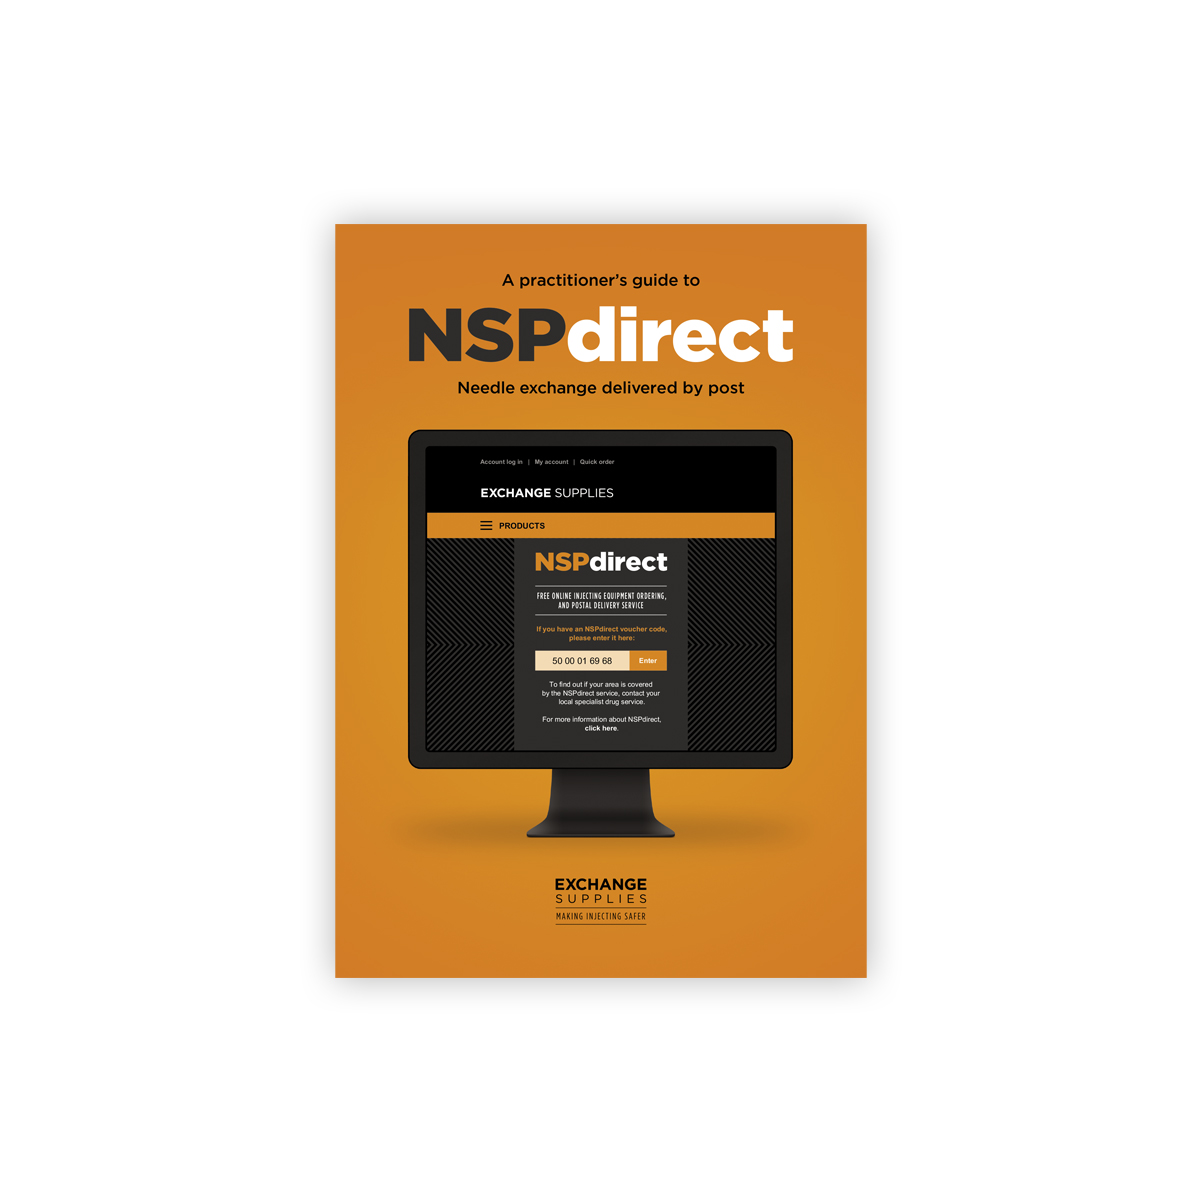 Practitioner's guide to NSPdirect